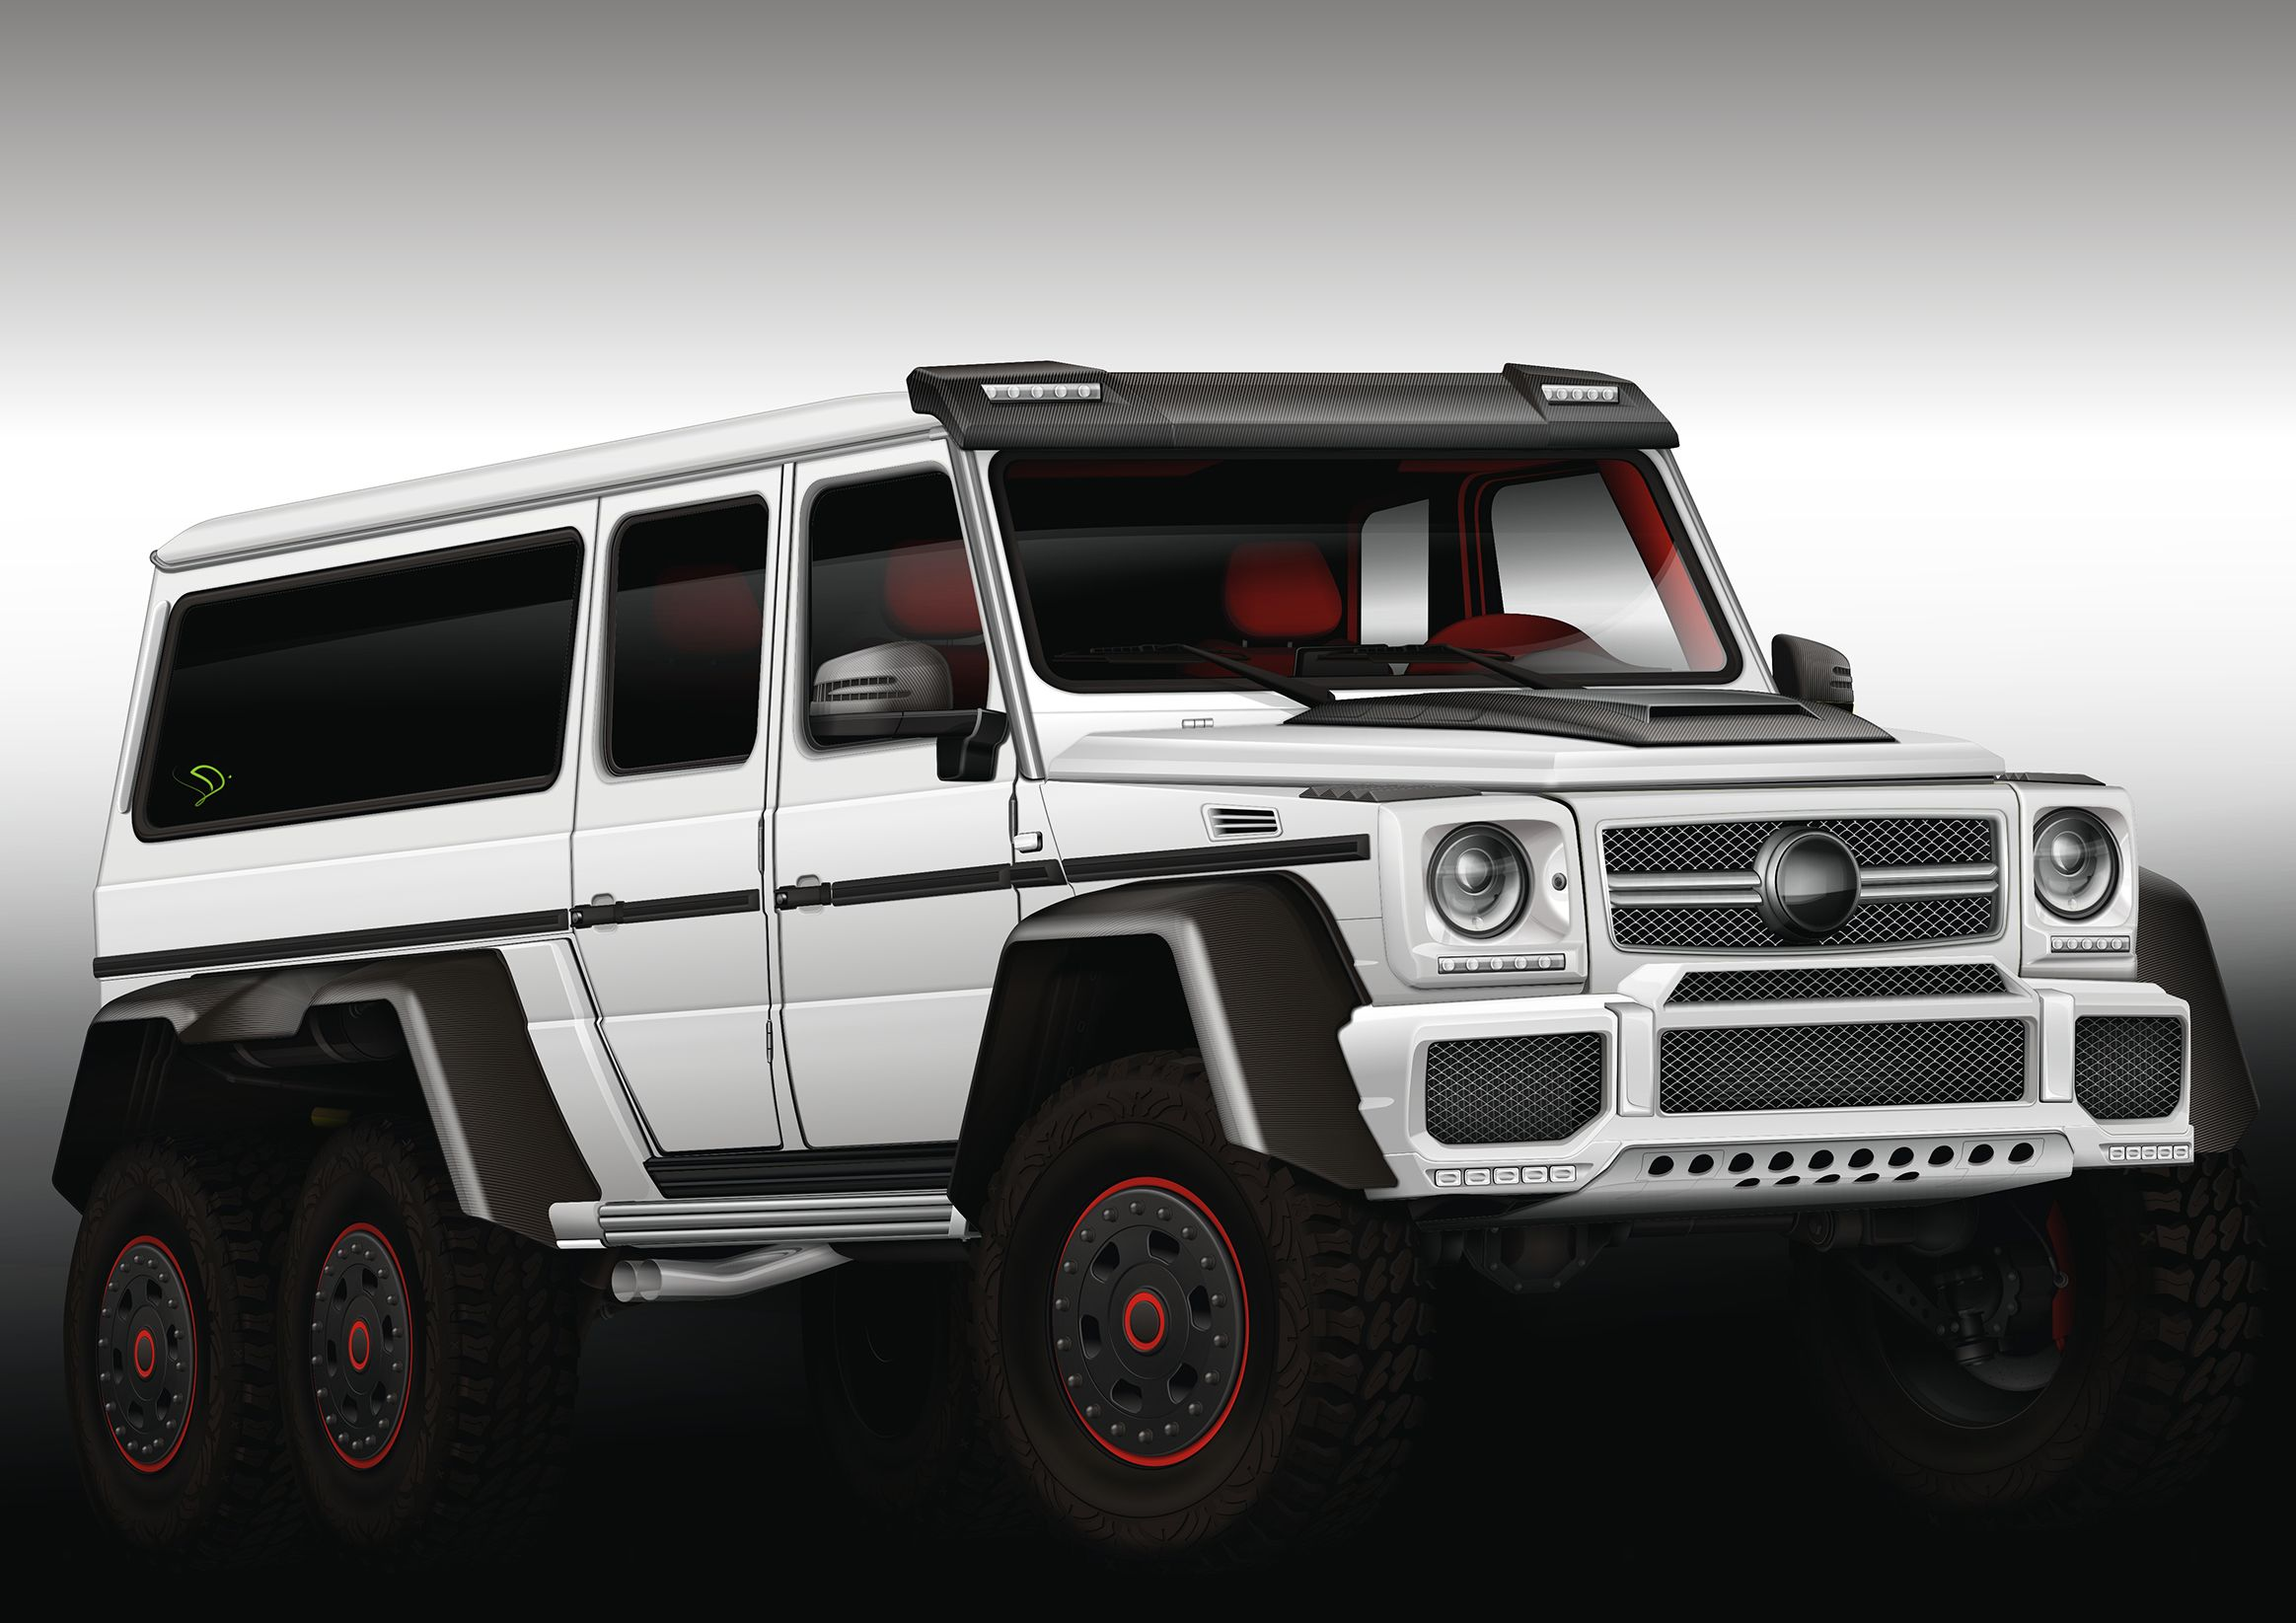 Mercedes Benz G63 AMG 6x6 Full Vector Linda Pinterest